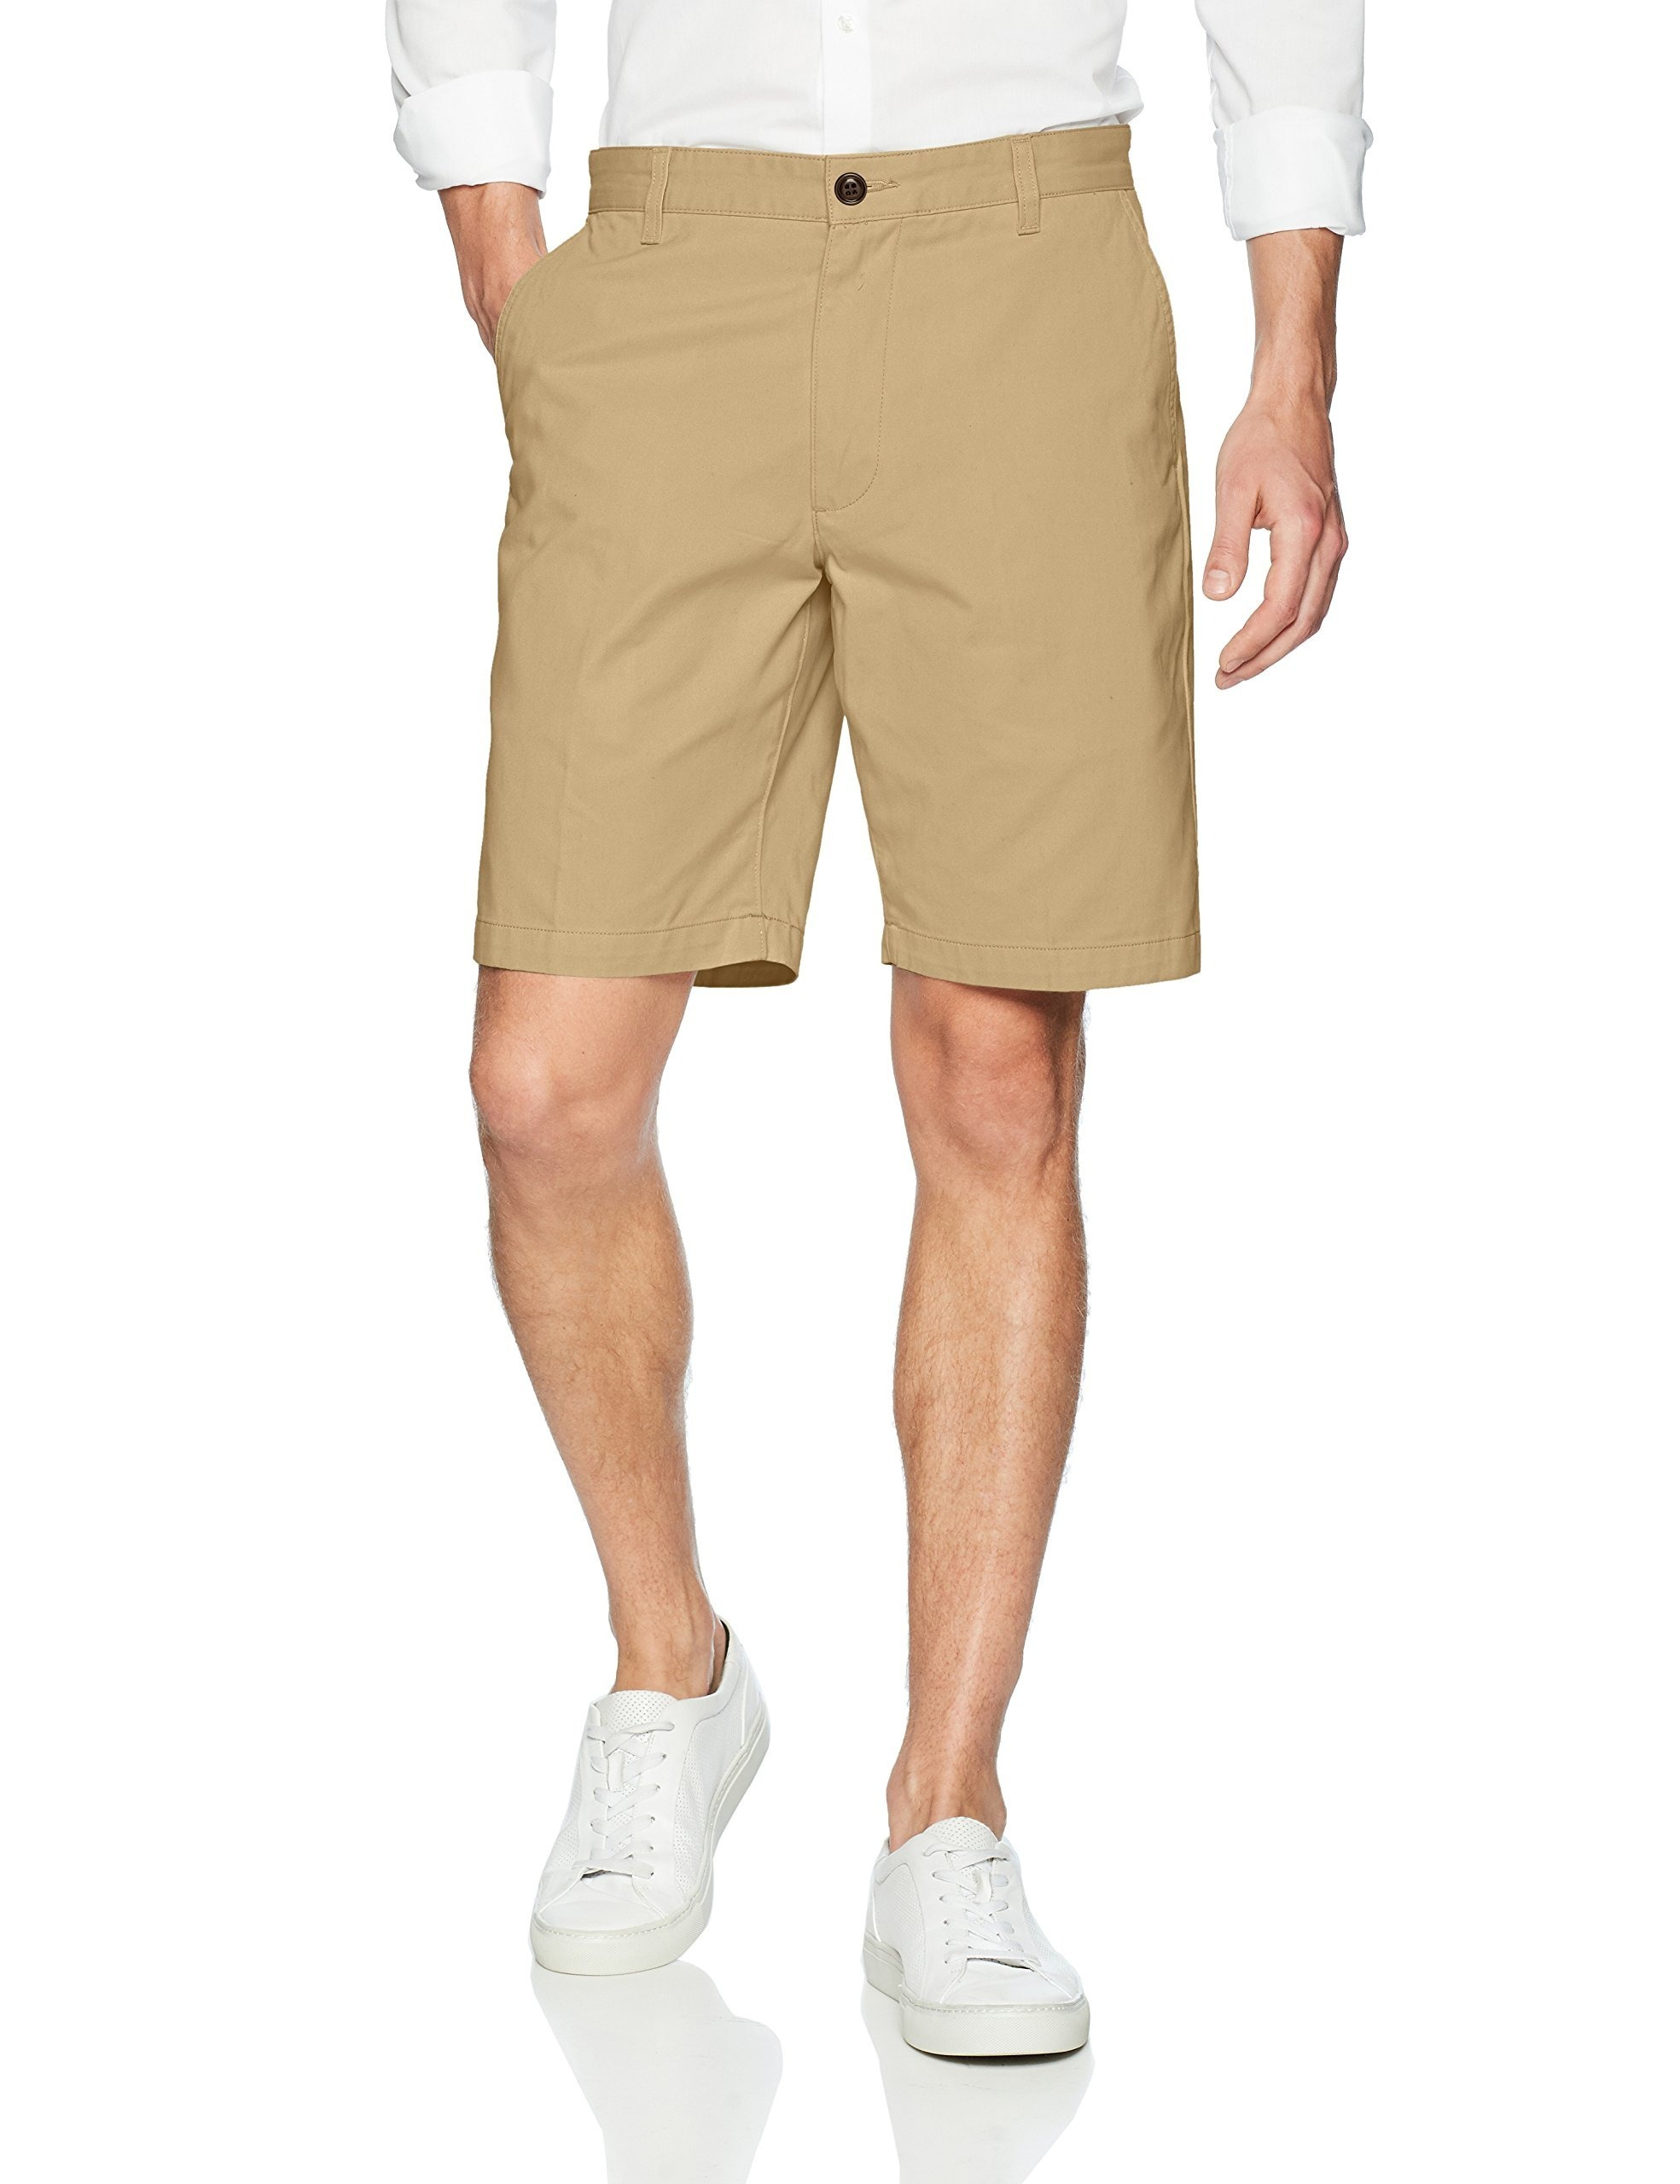 Dockers-NEW-Beige-Mens-Size-40-Khakis-Classic-Fit-Flat-Front-Shorts